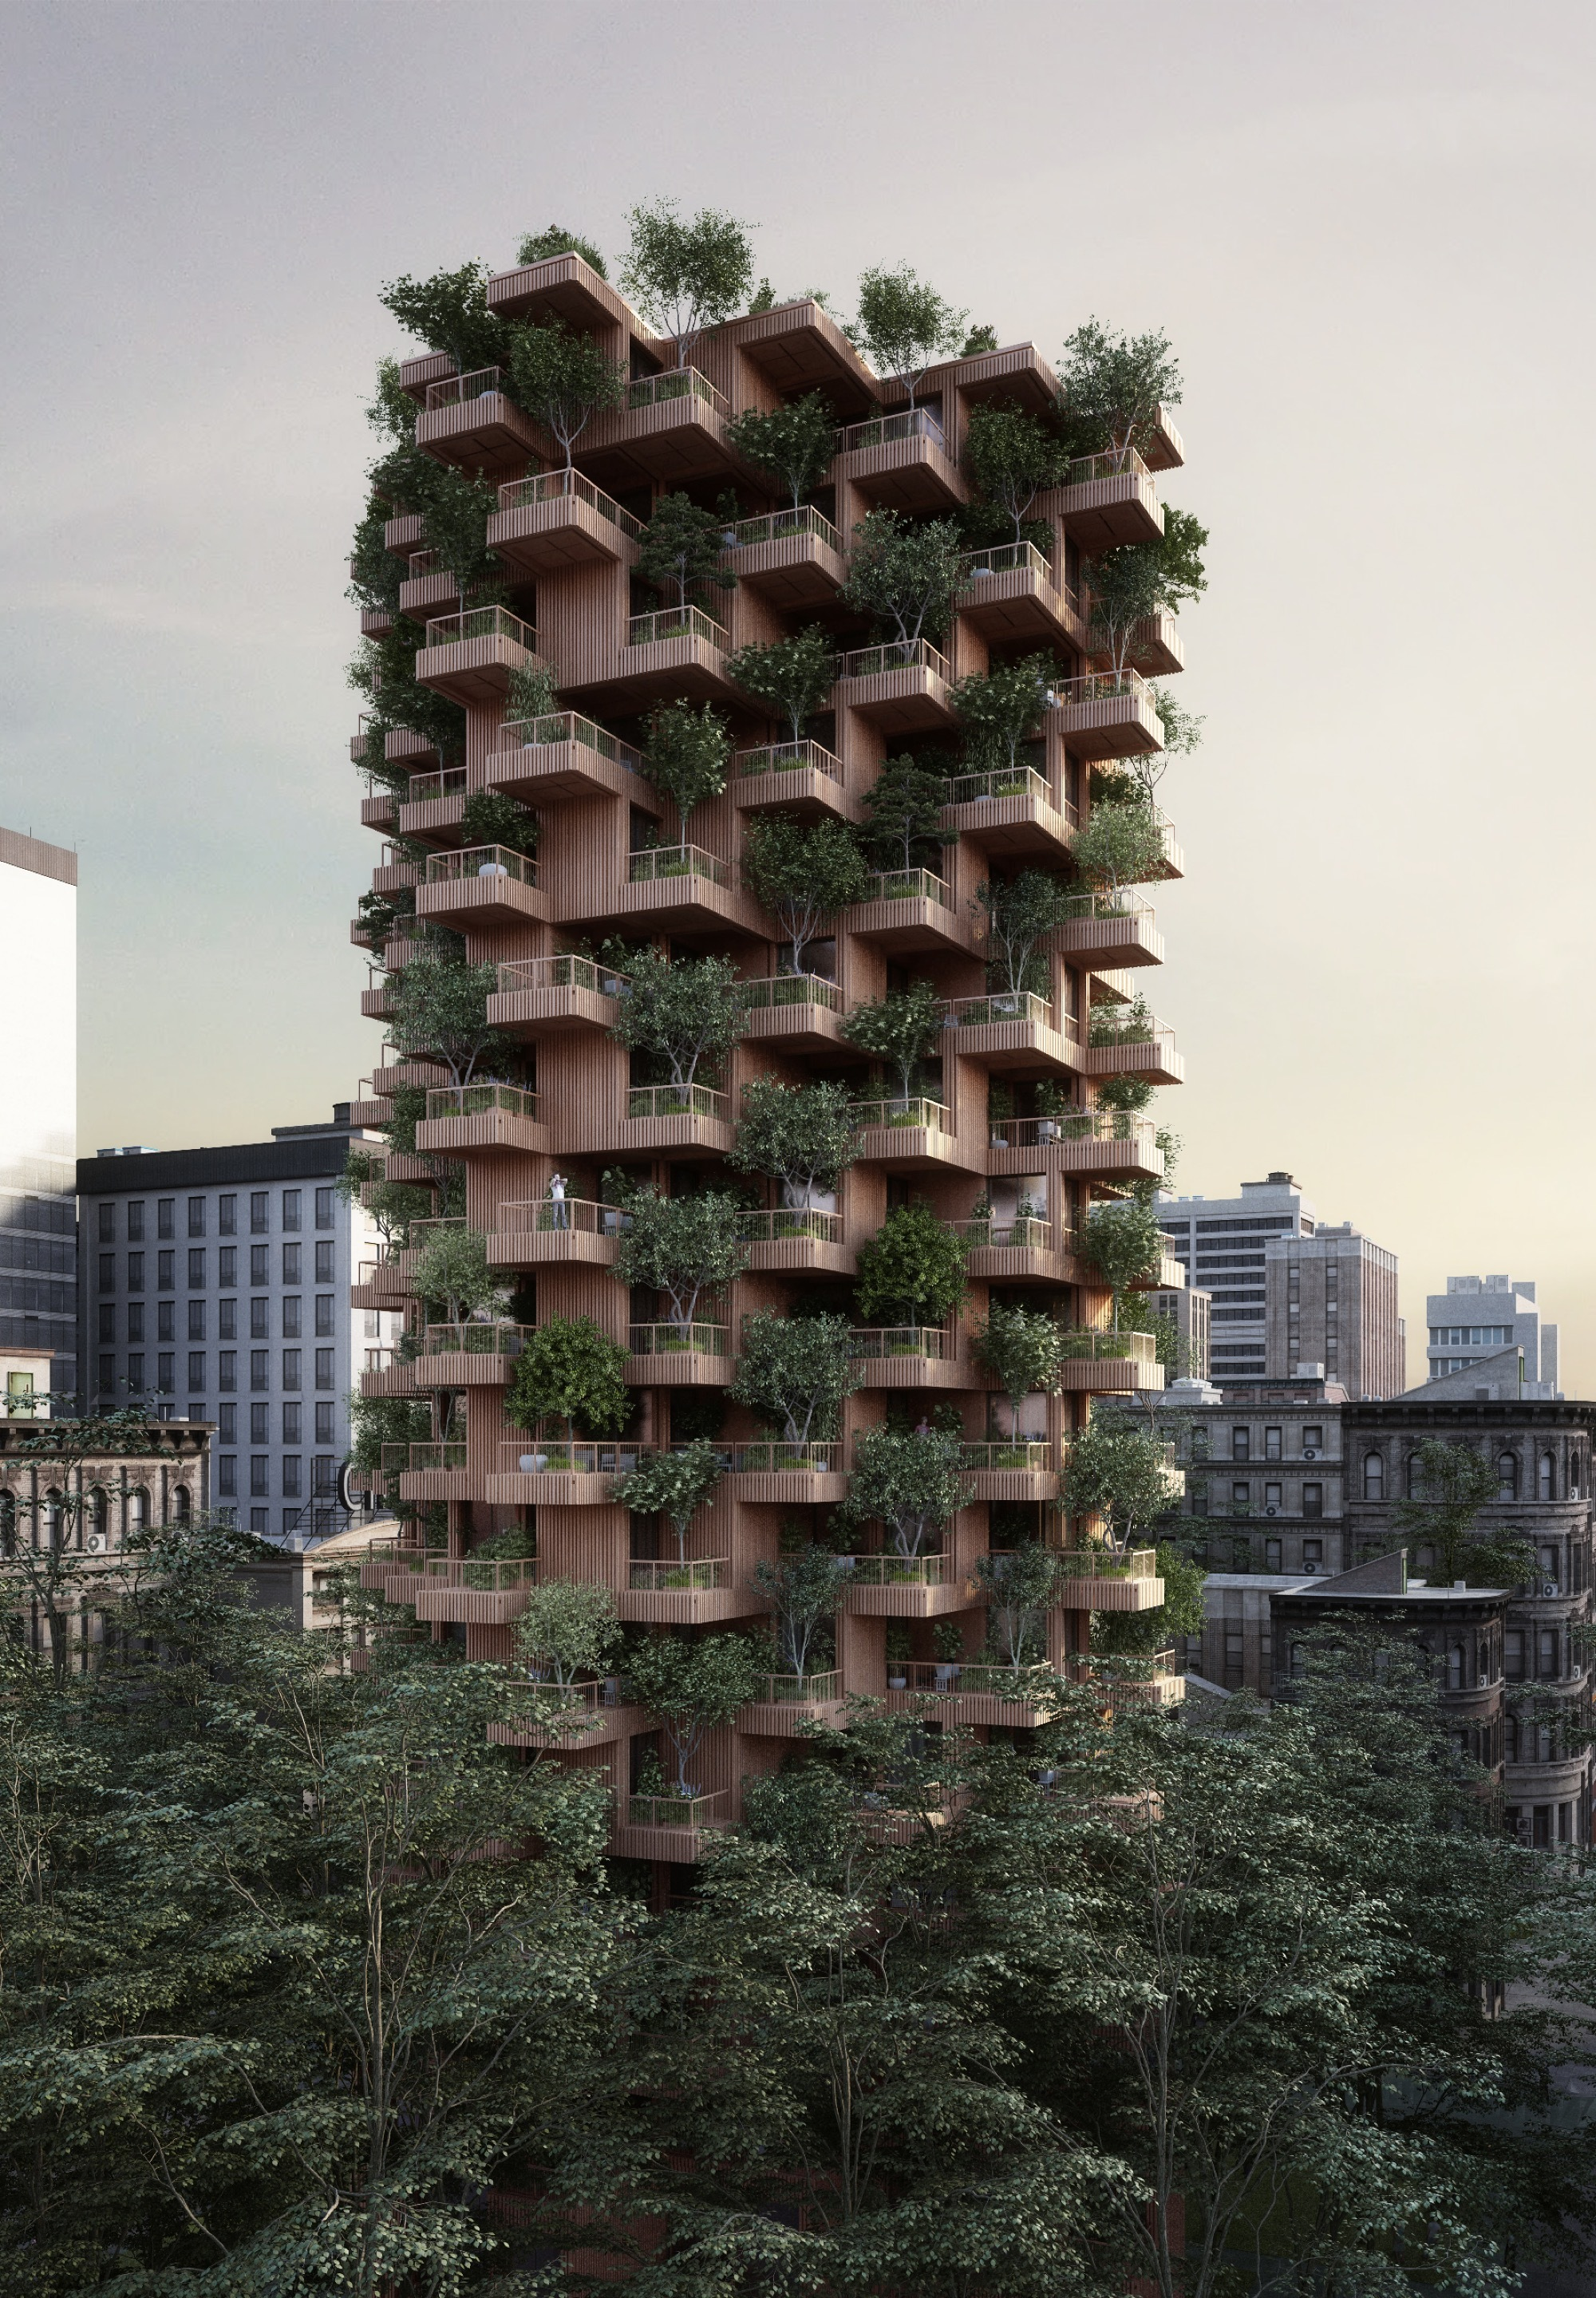 Gallery Of Penda Designs Modular Timber Tower Inspired By